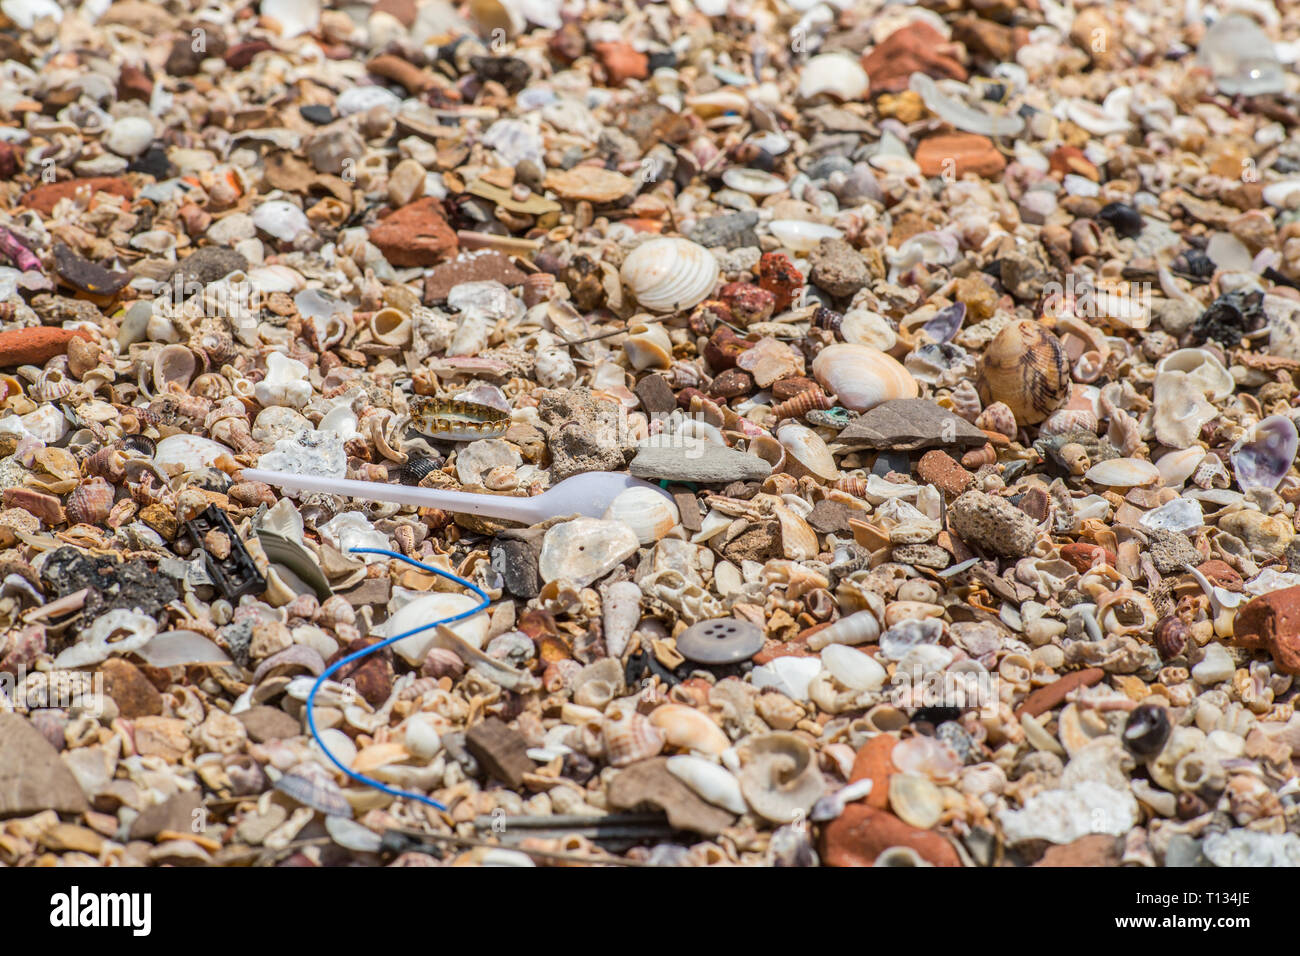 Close up of plastic waste on a beach. - Stock Image